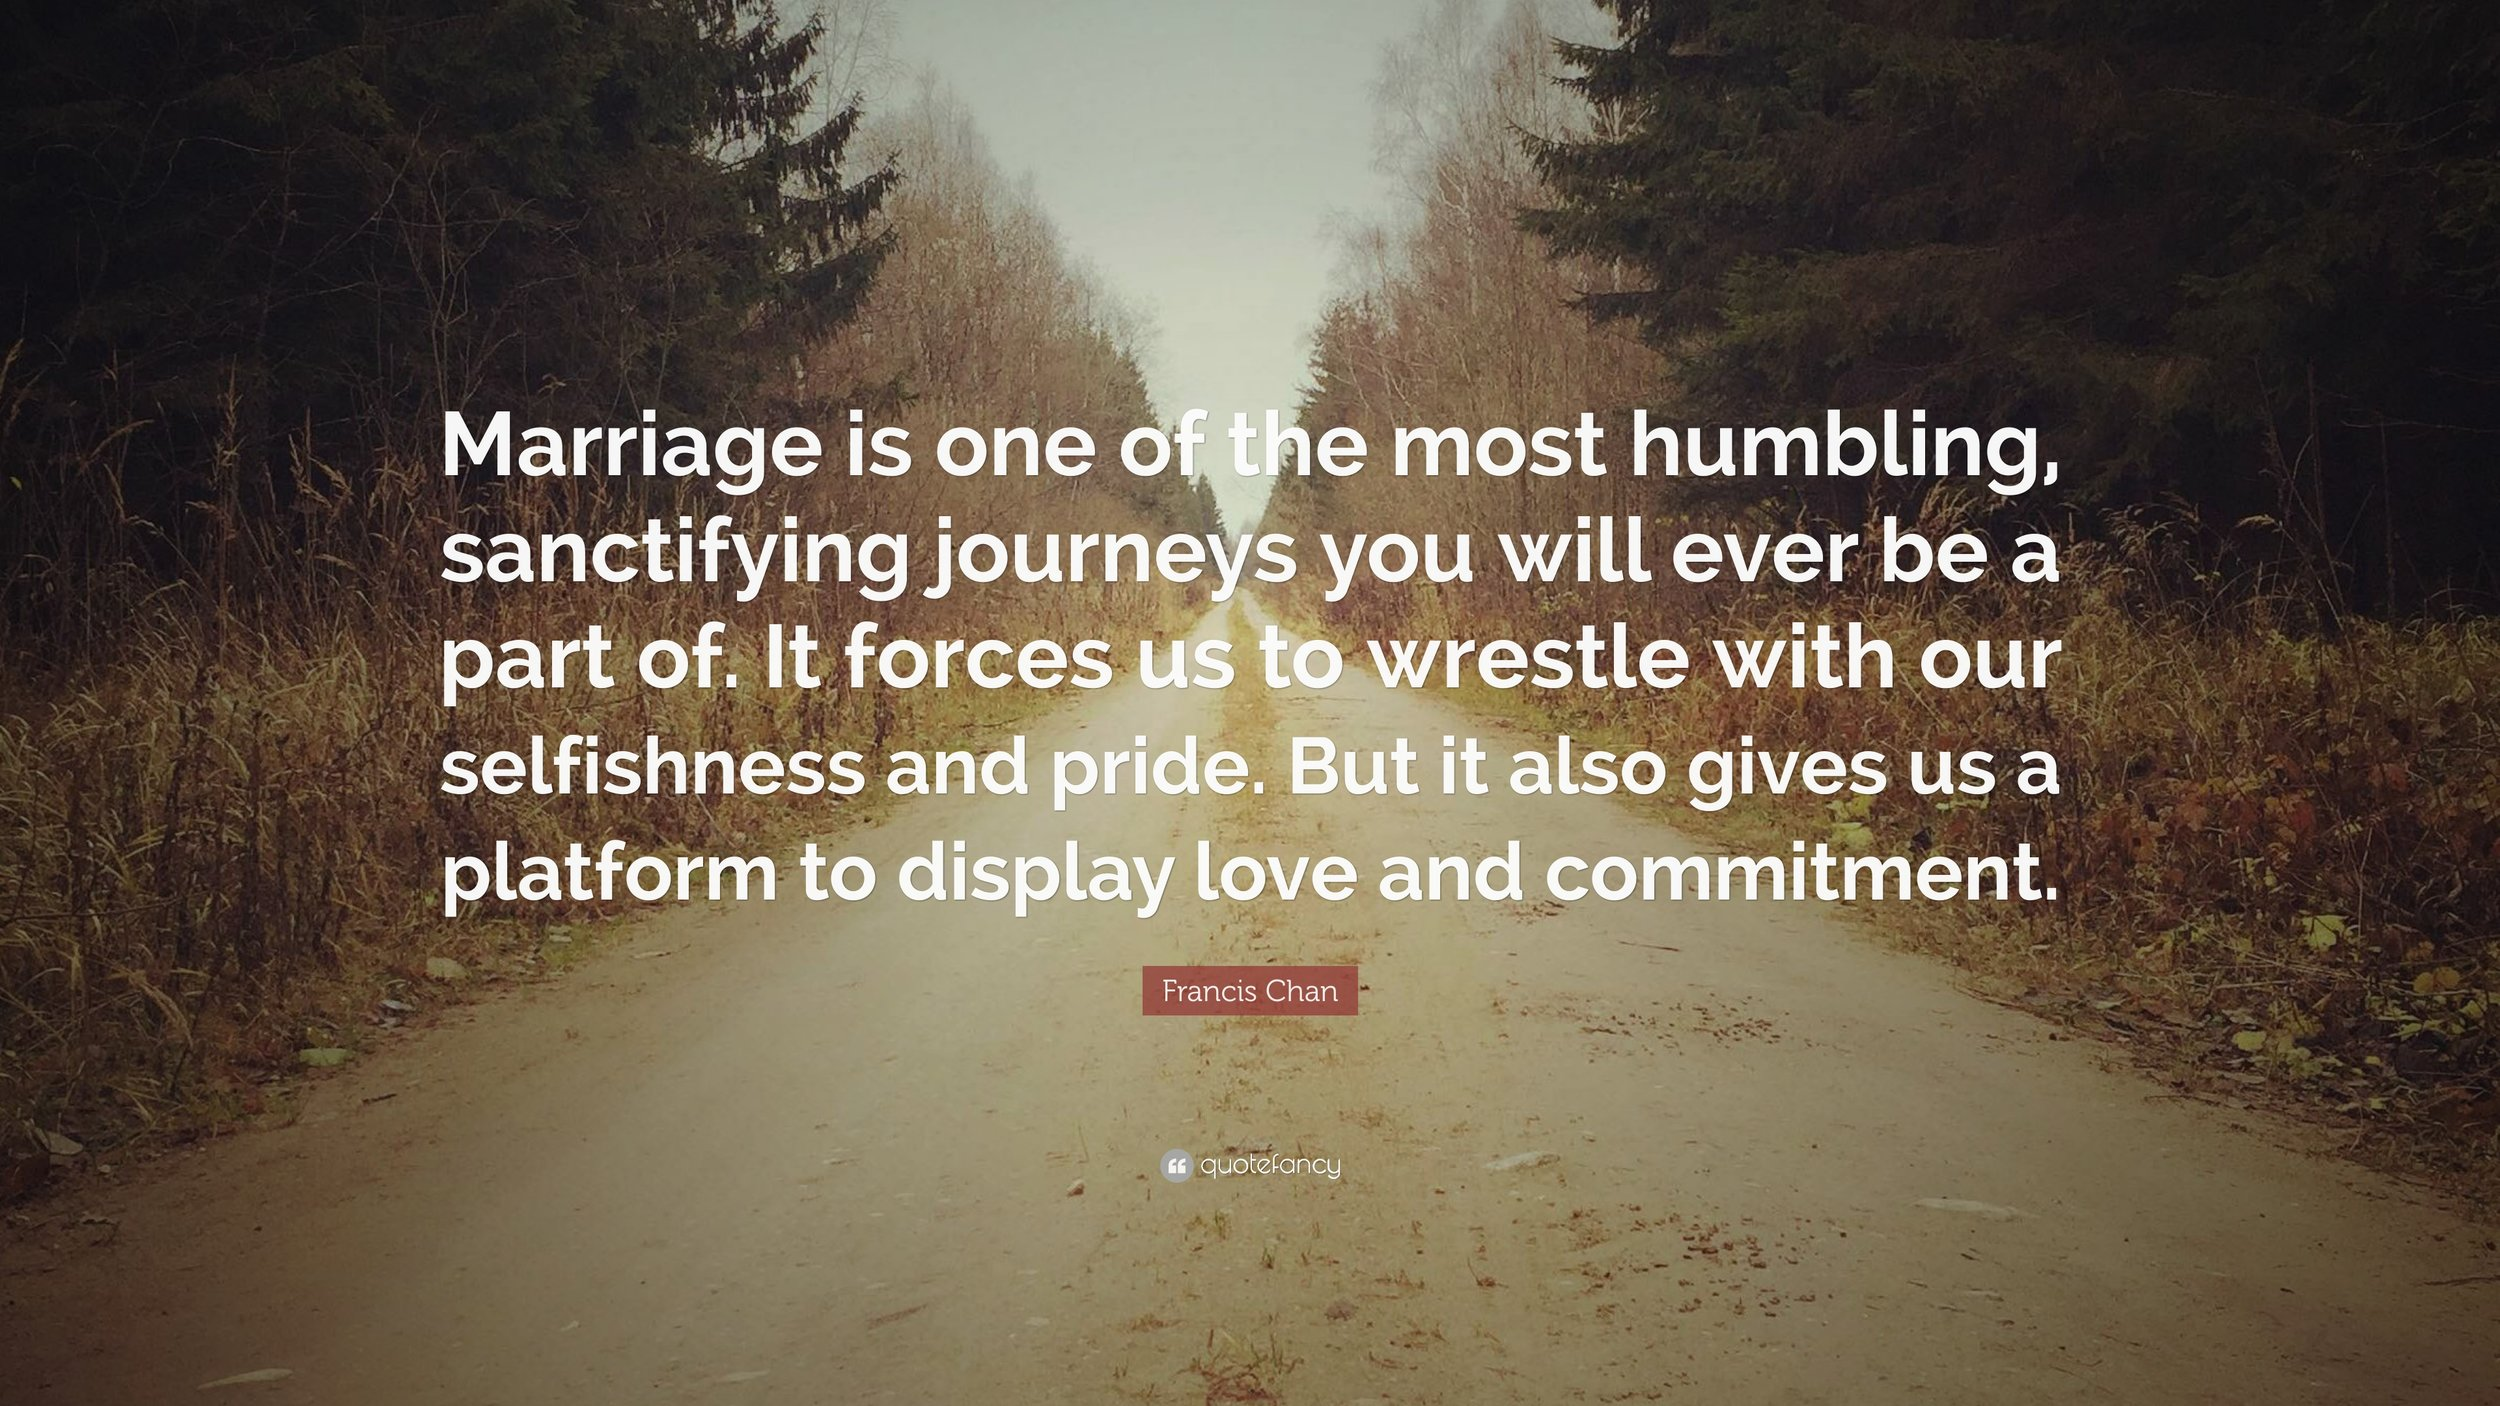 217667-Francis-Chan-Quote-Marriage-is-one-of-the-most-humbling.jpg